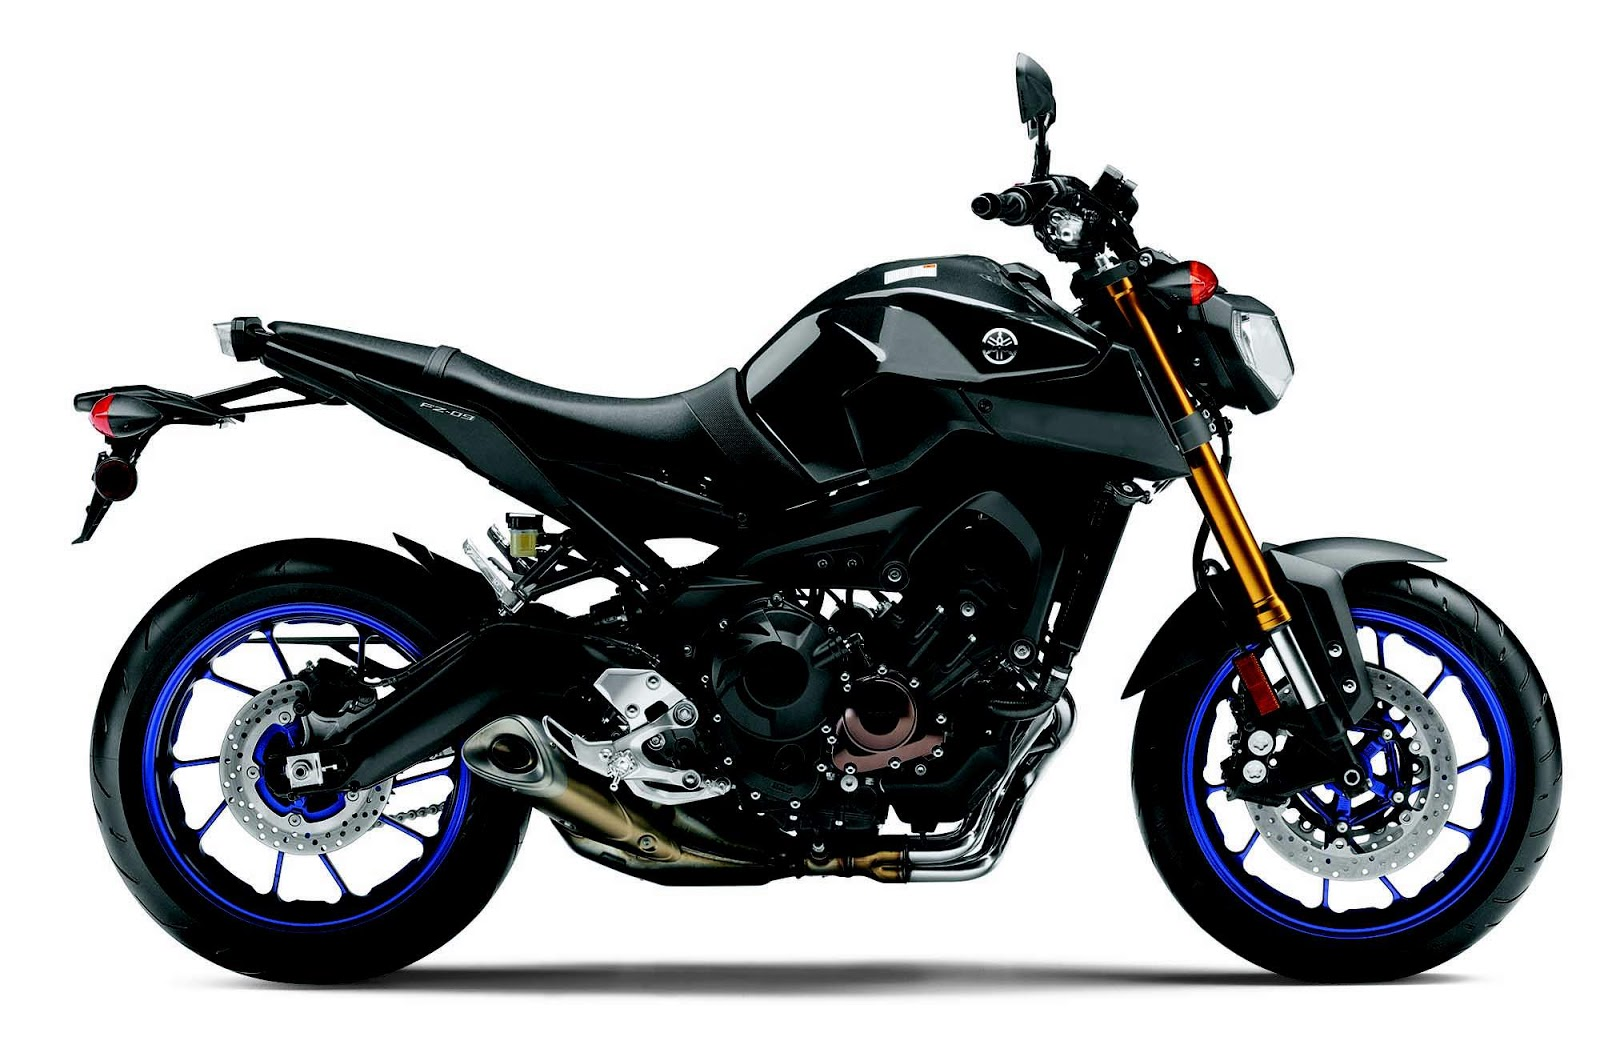 Video Motor Yamaha Terbaru 2014 Yamaha FZ-09 850 Triple